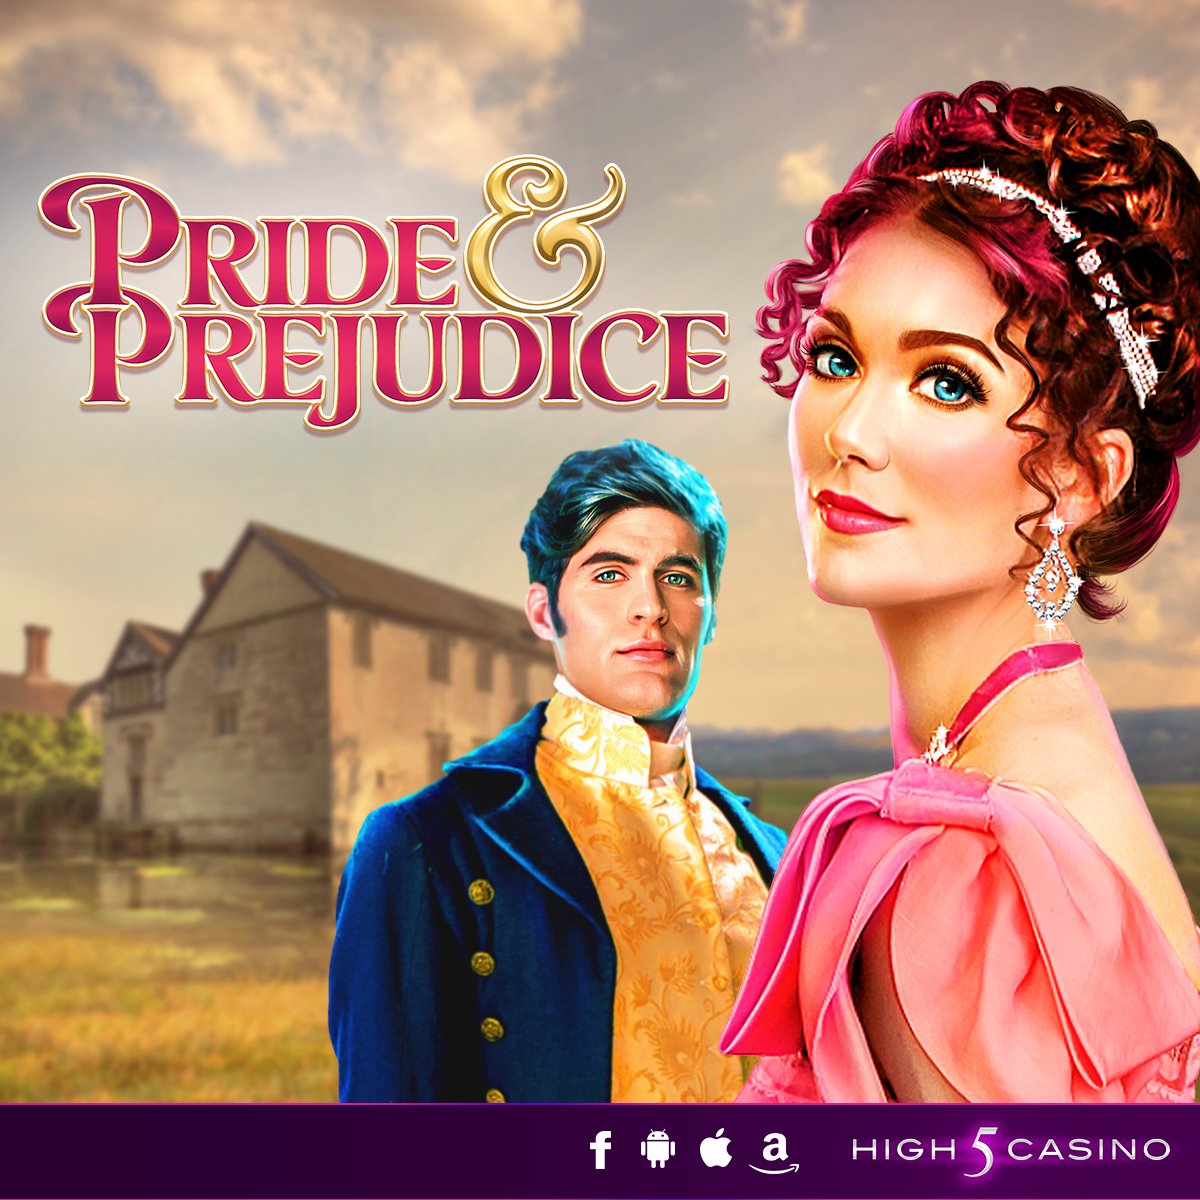 Game preview pride prejudice high 5 blog witness the loving story of the literary classic pride prejudice high 5 casinos 199th game arrives soon thecheapjerseys Choice Image